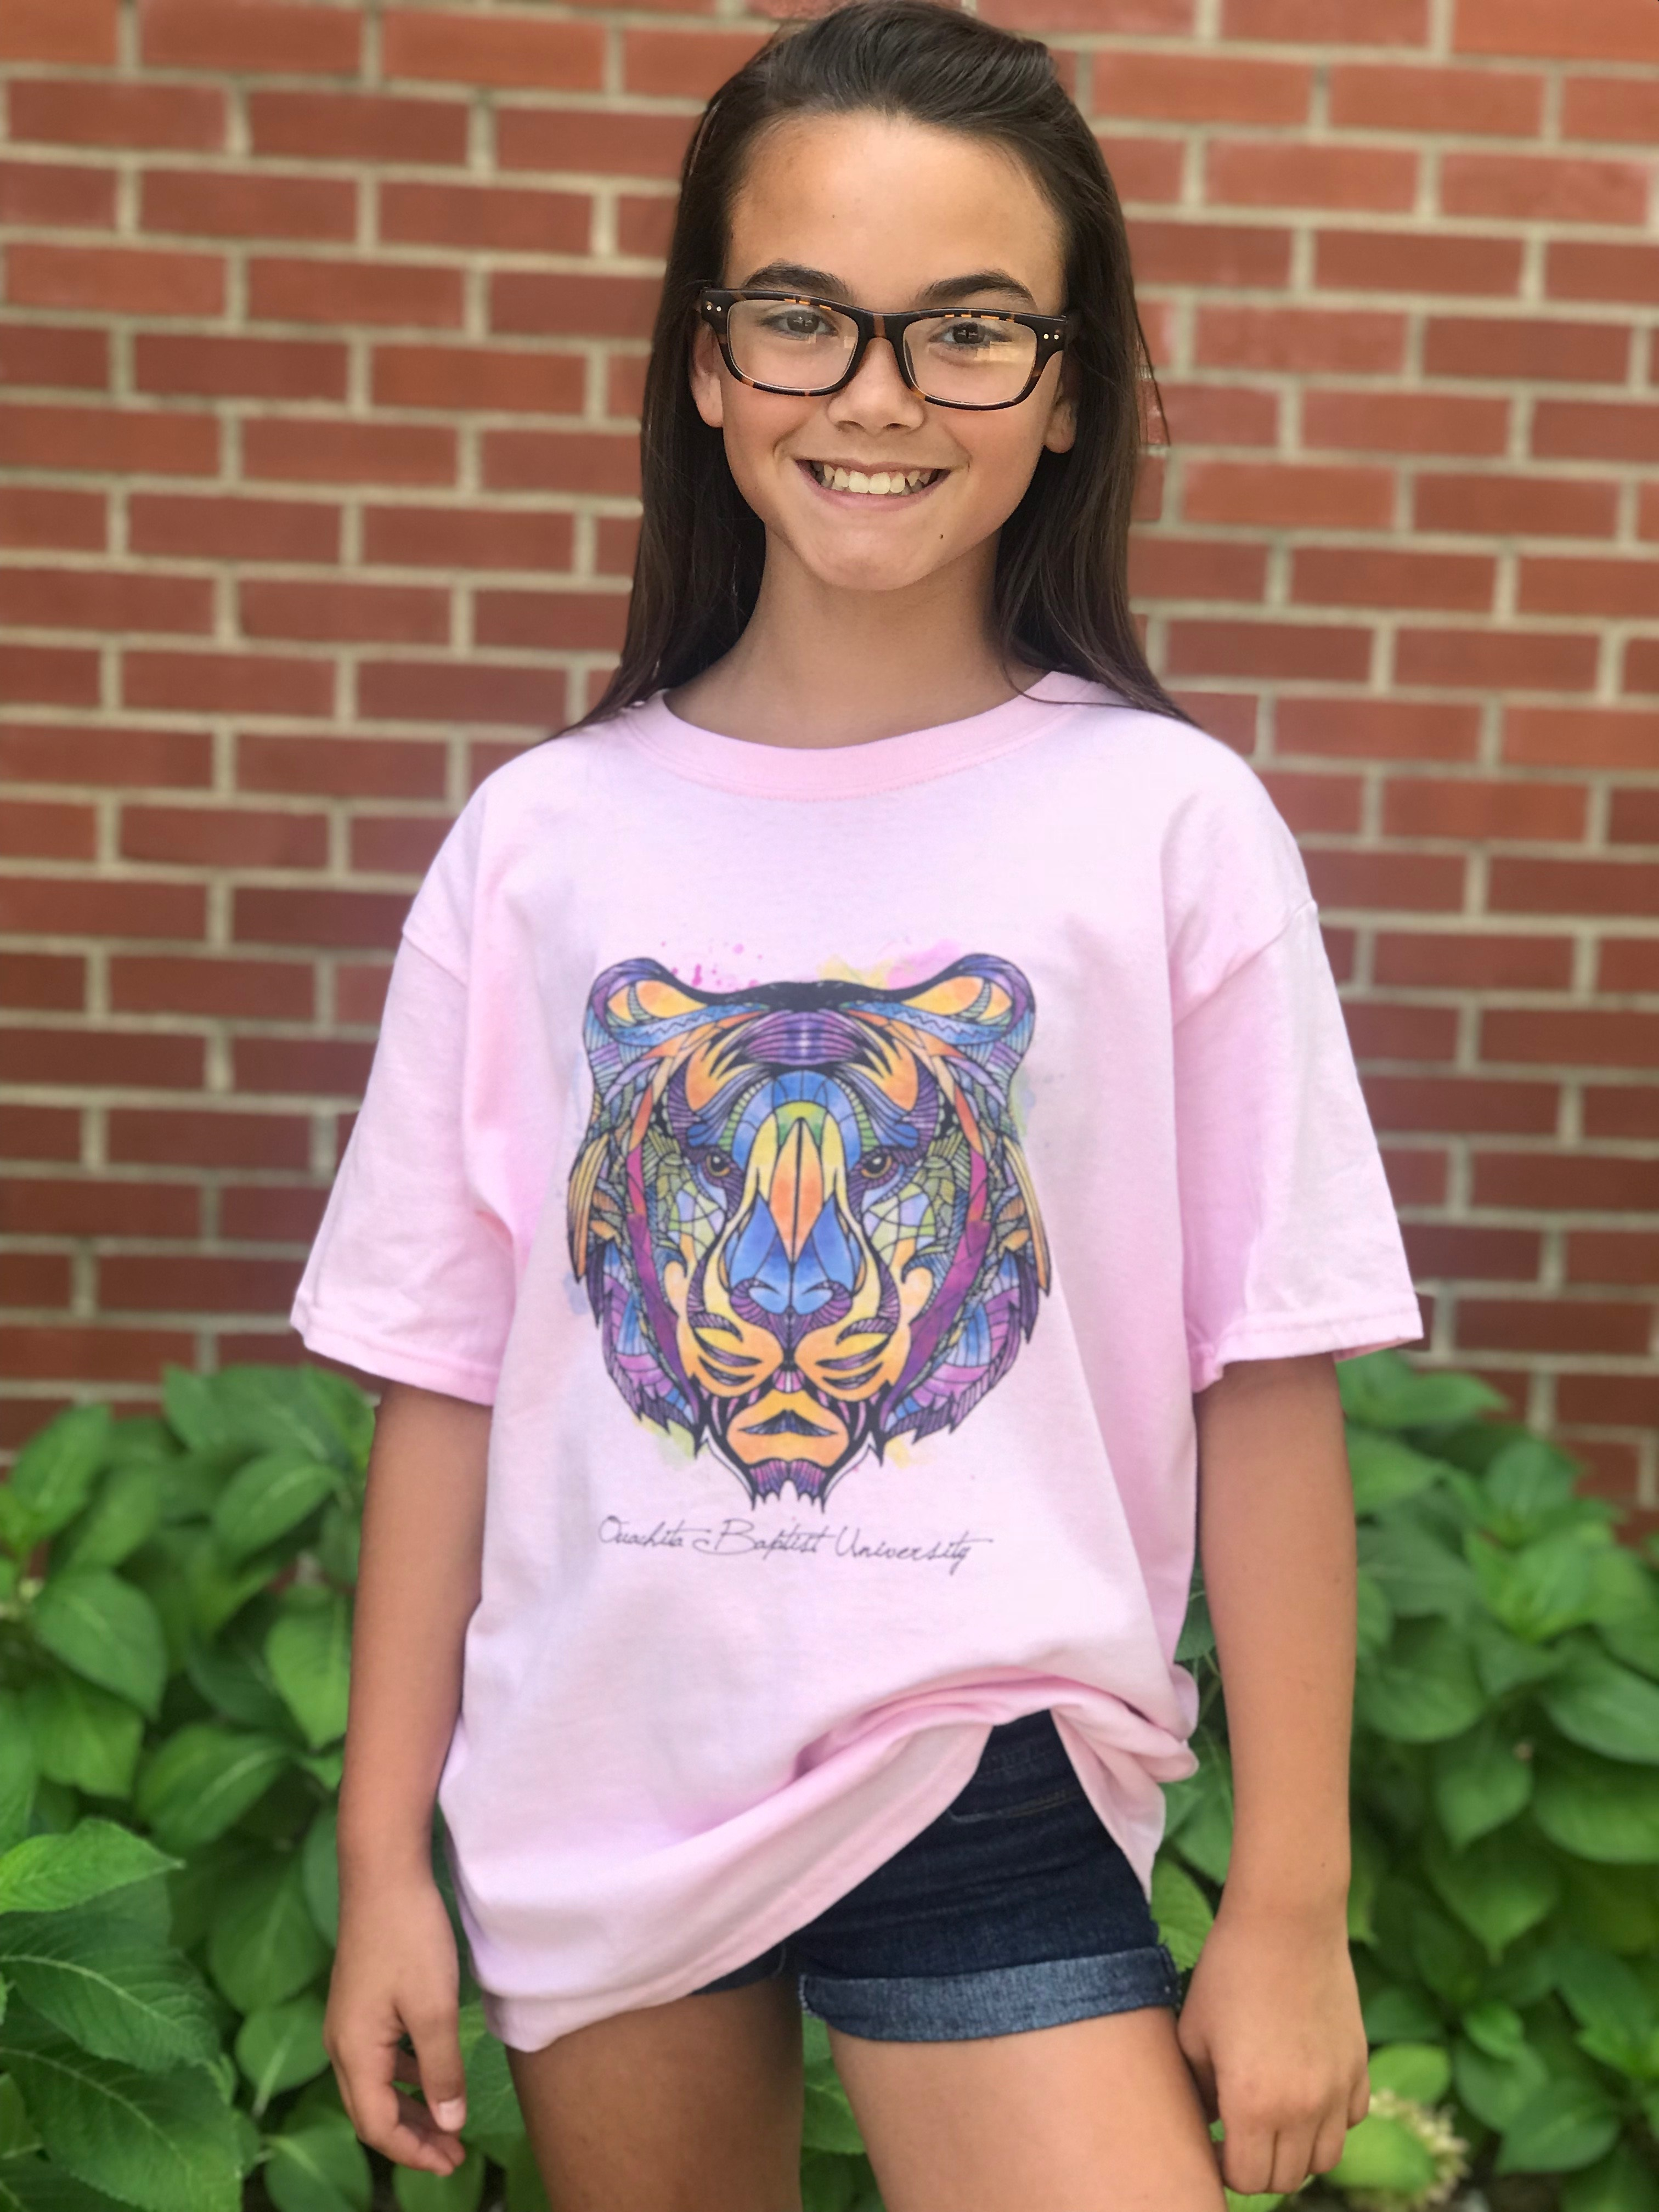 OUACHITA BAPTIST UNIVERSITY WATERCOLOR YOUTH TEE